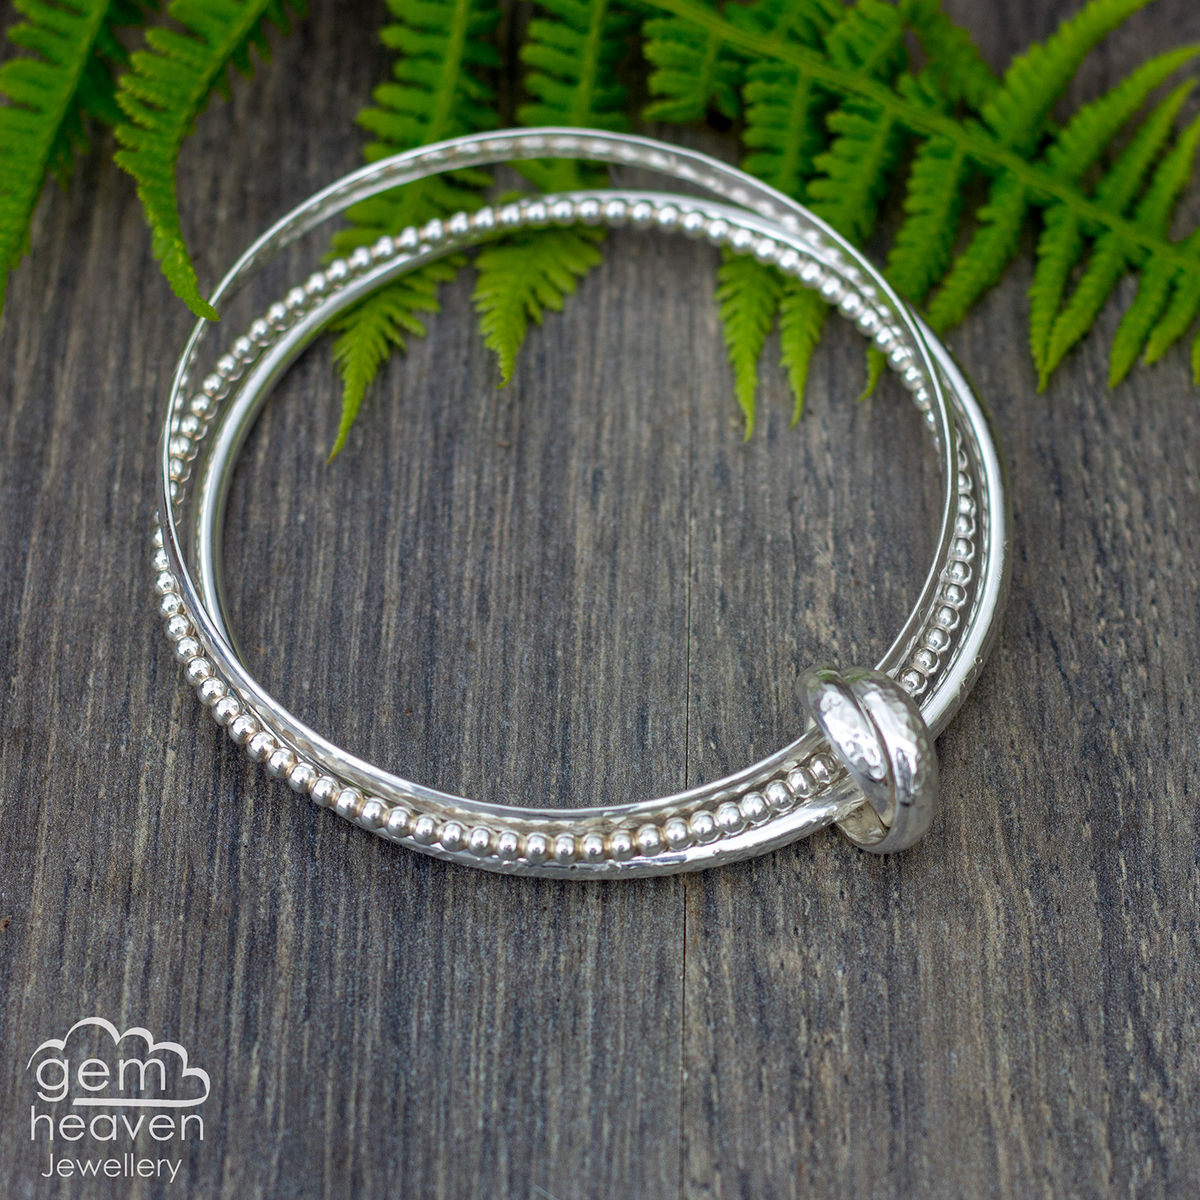 Entwined bangle Trio - product images  of